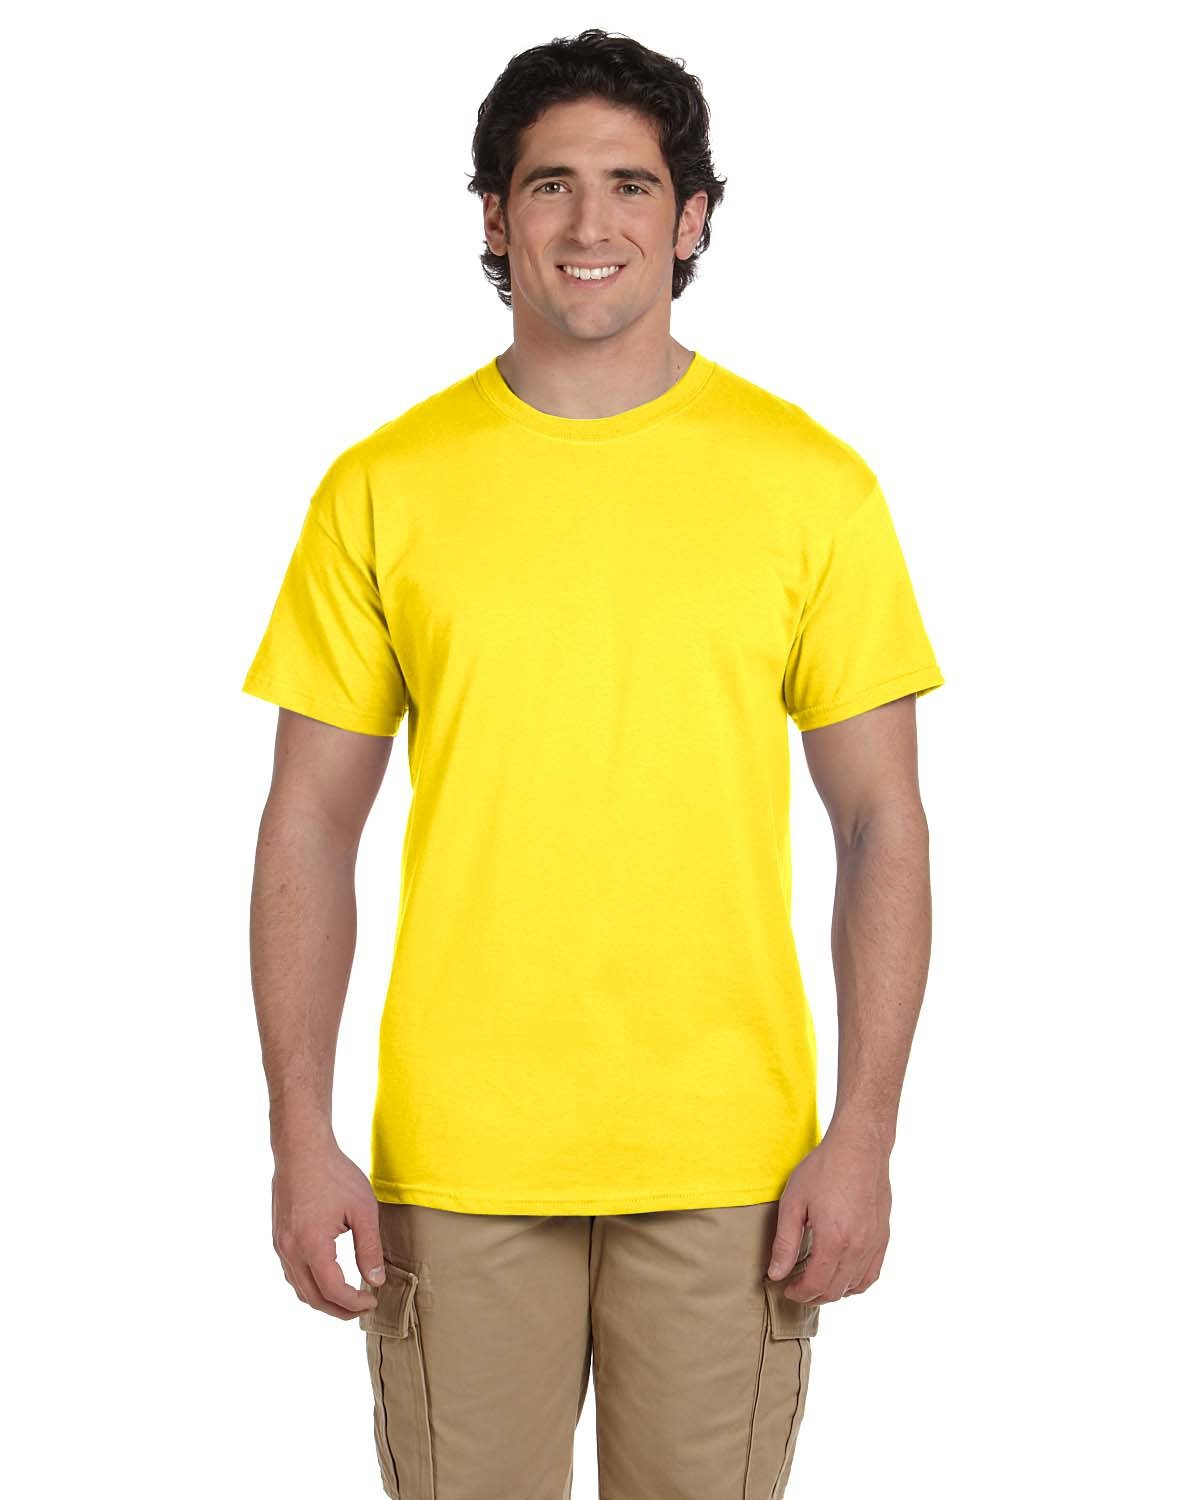 Fruit of the Loom Adult HD Cotton™ T-Shirt YELLOW